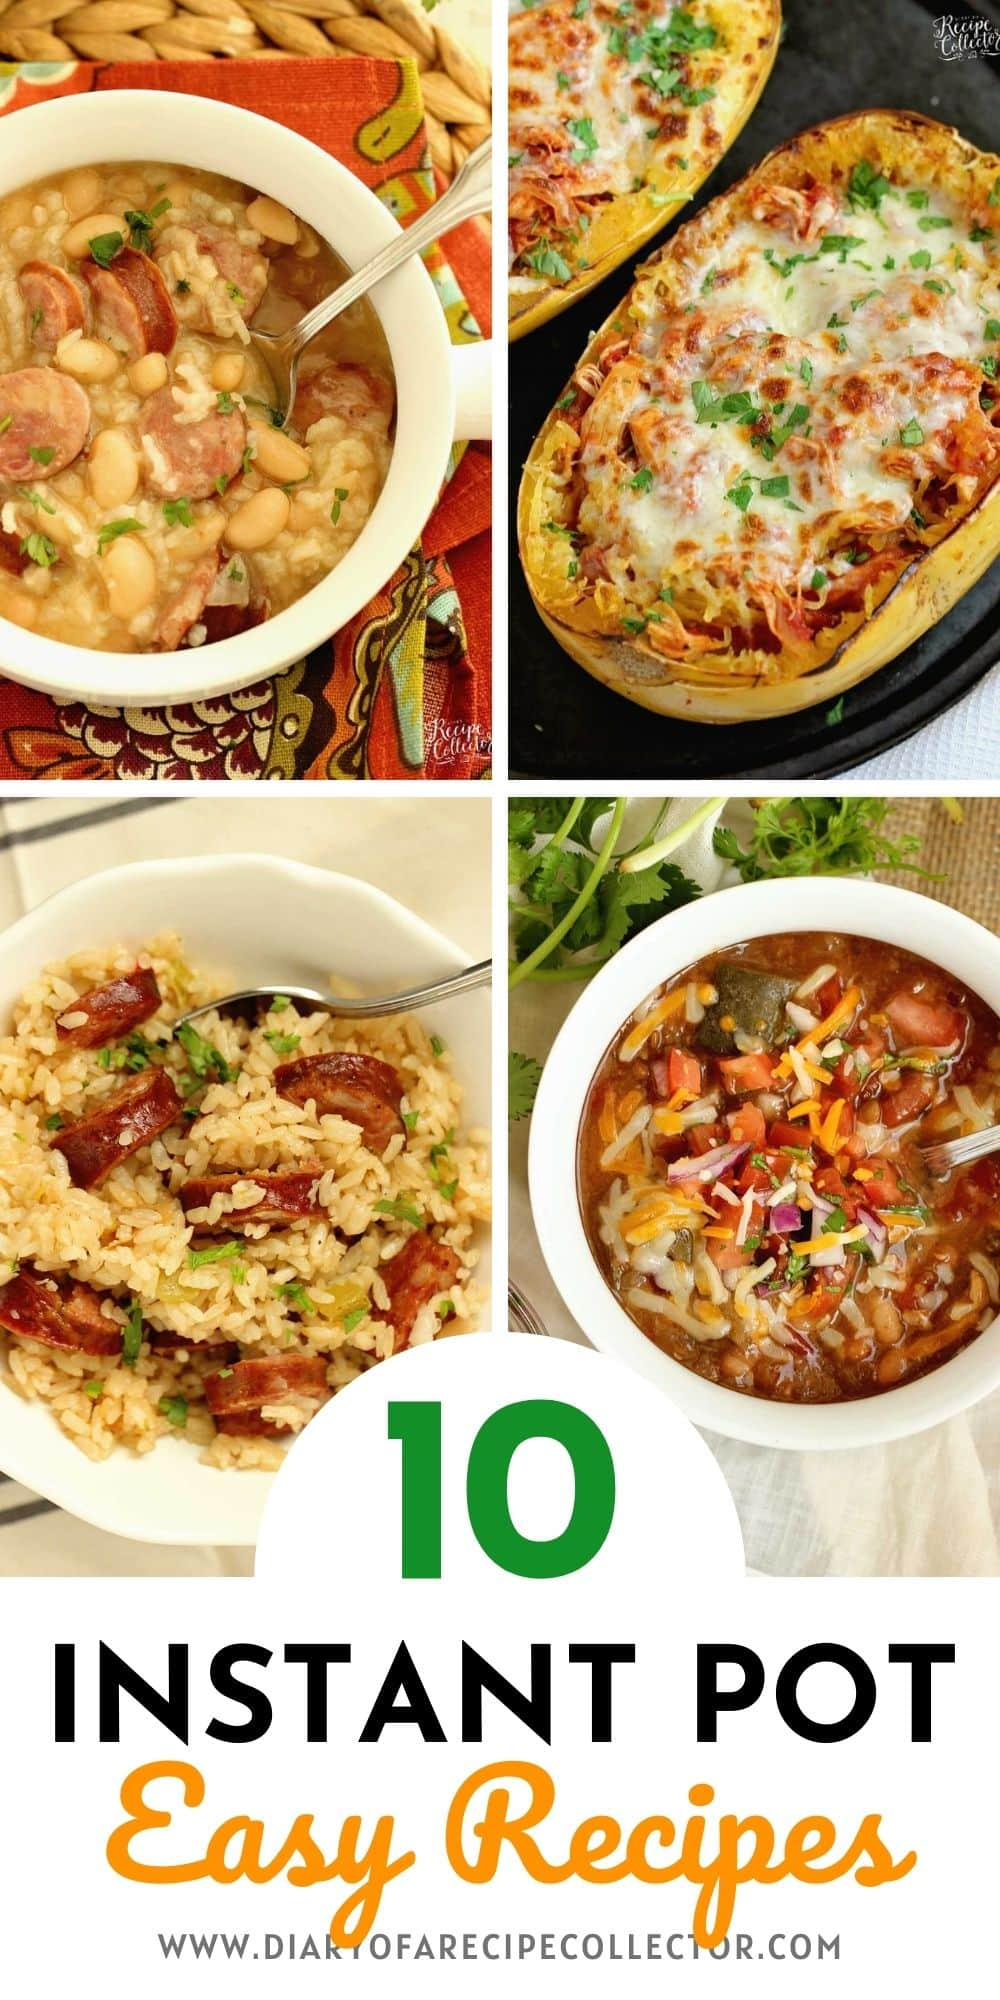 Favorite Instant Pot Recipes